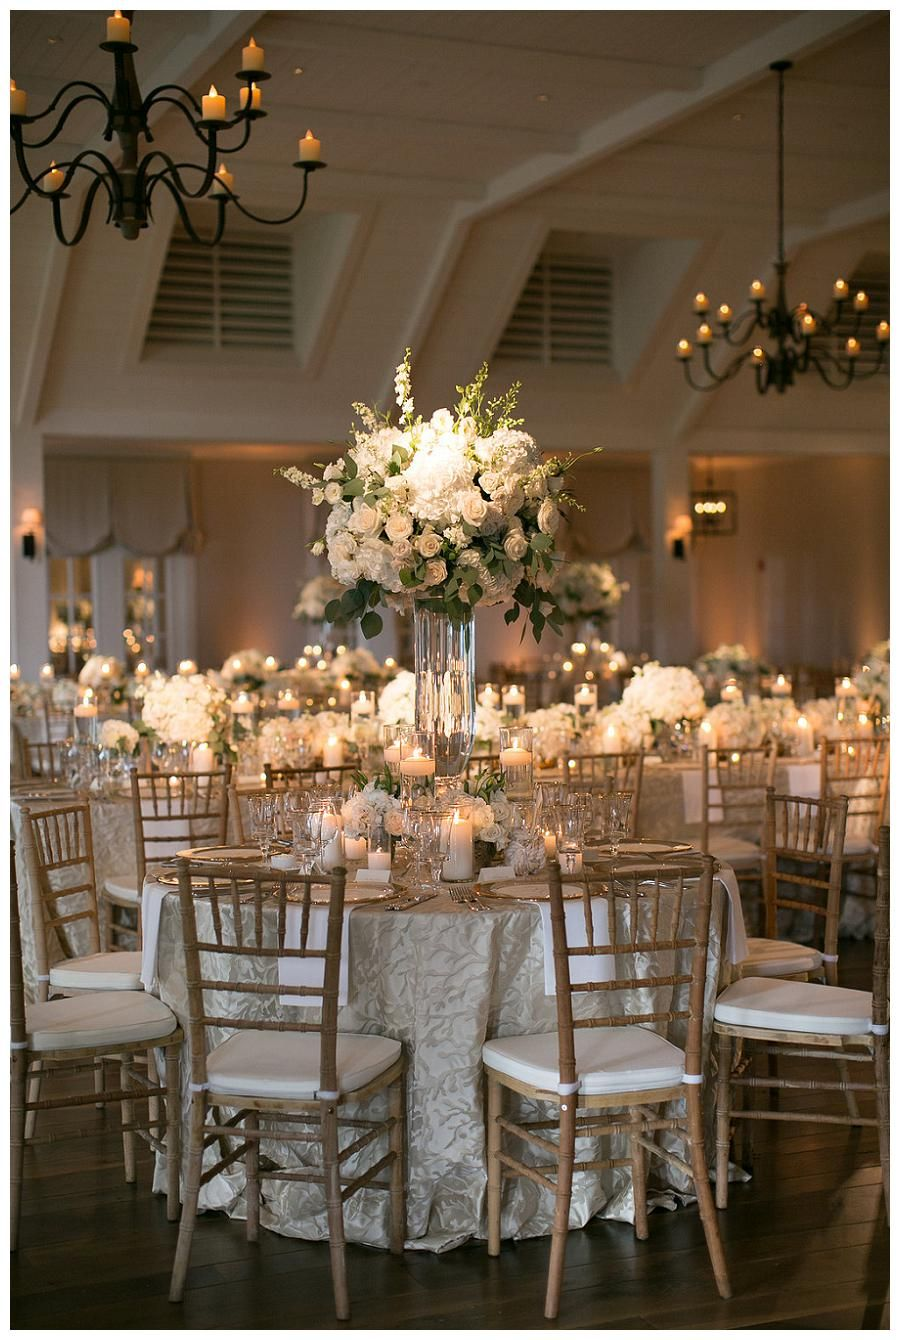 Wedding Day Room Decoration Of 36 White Wedding Decoration Ideas Floating Candles